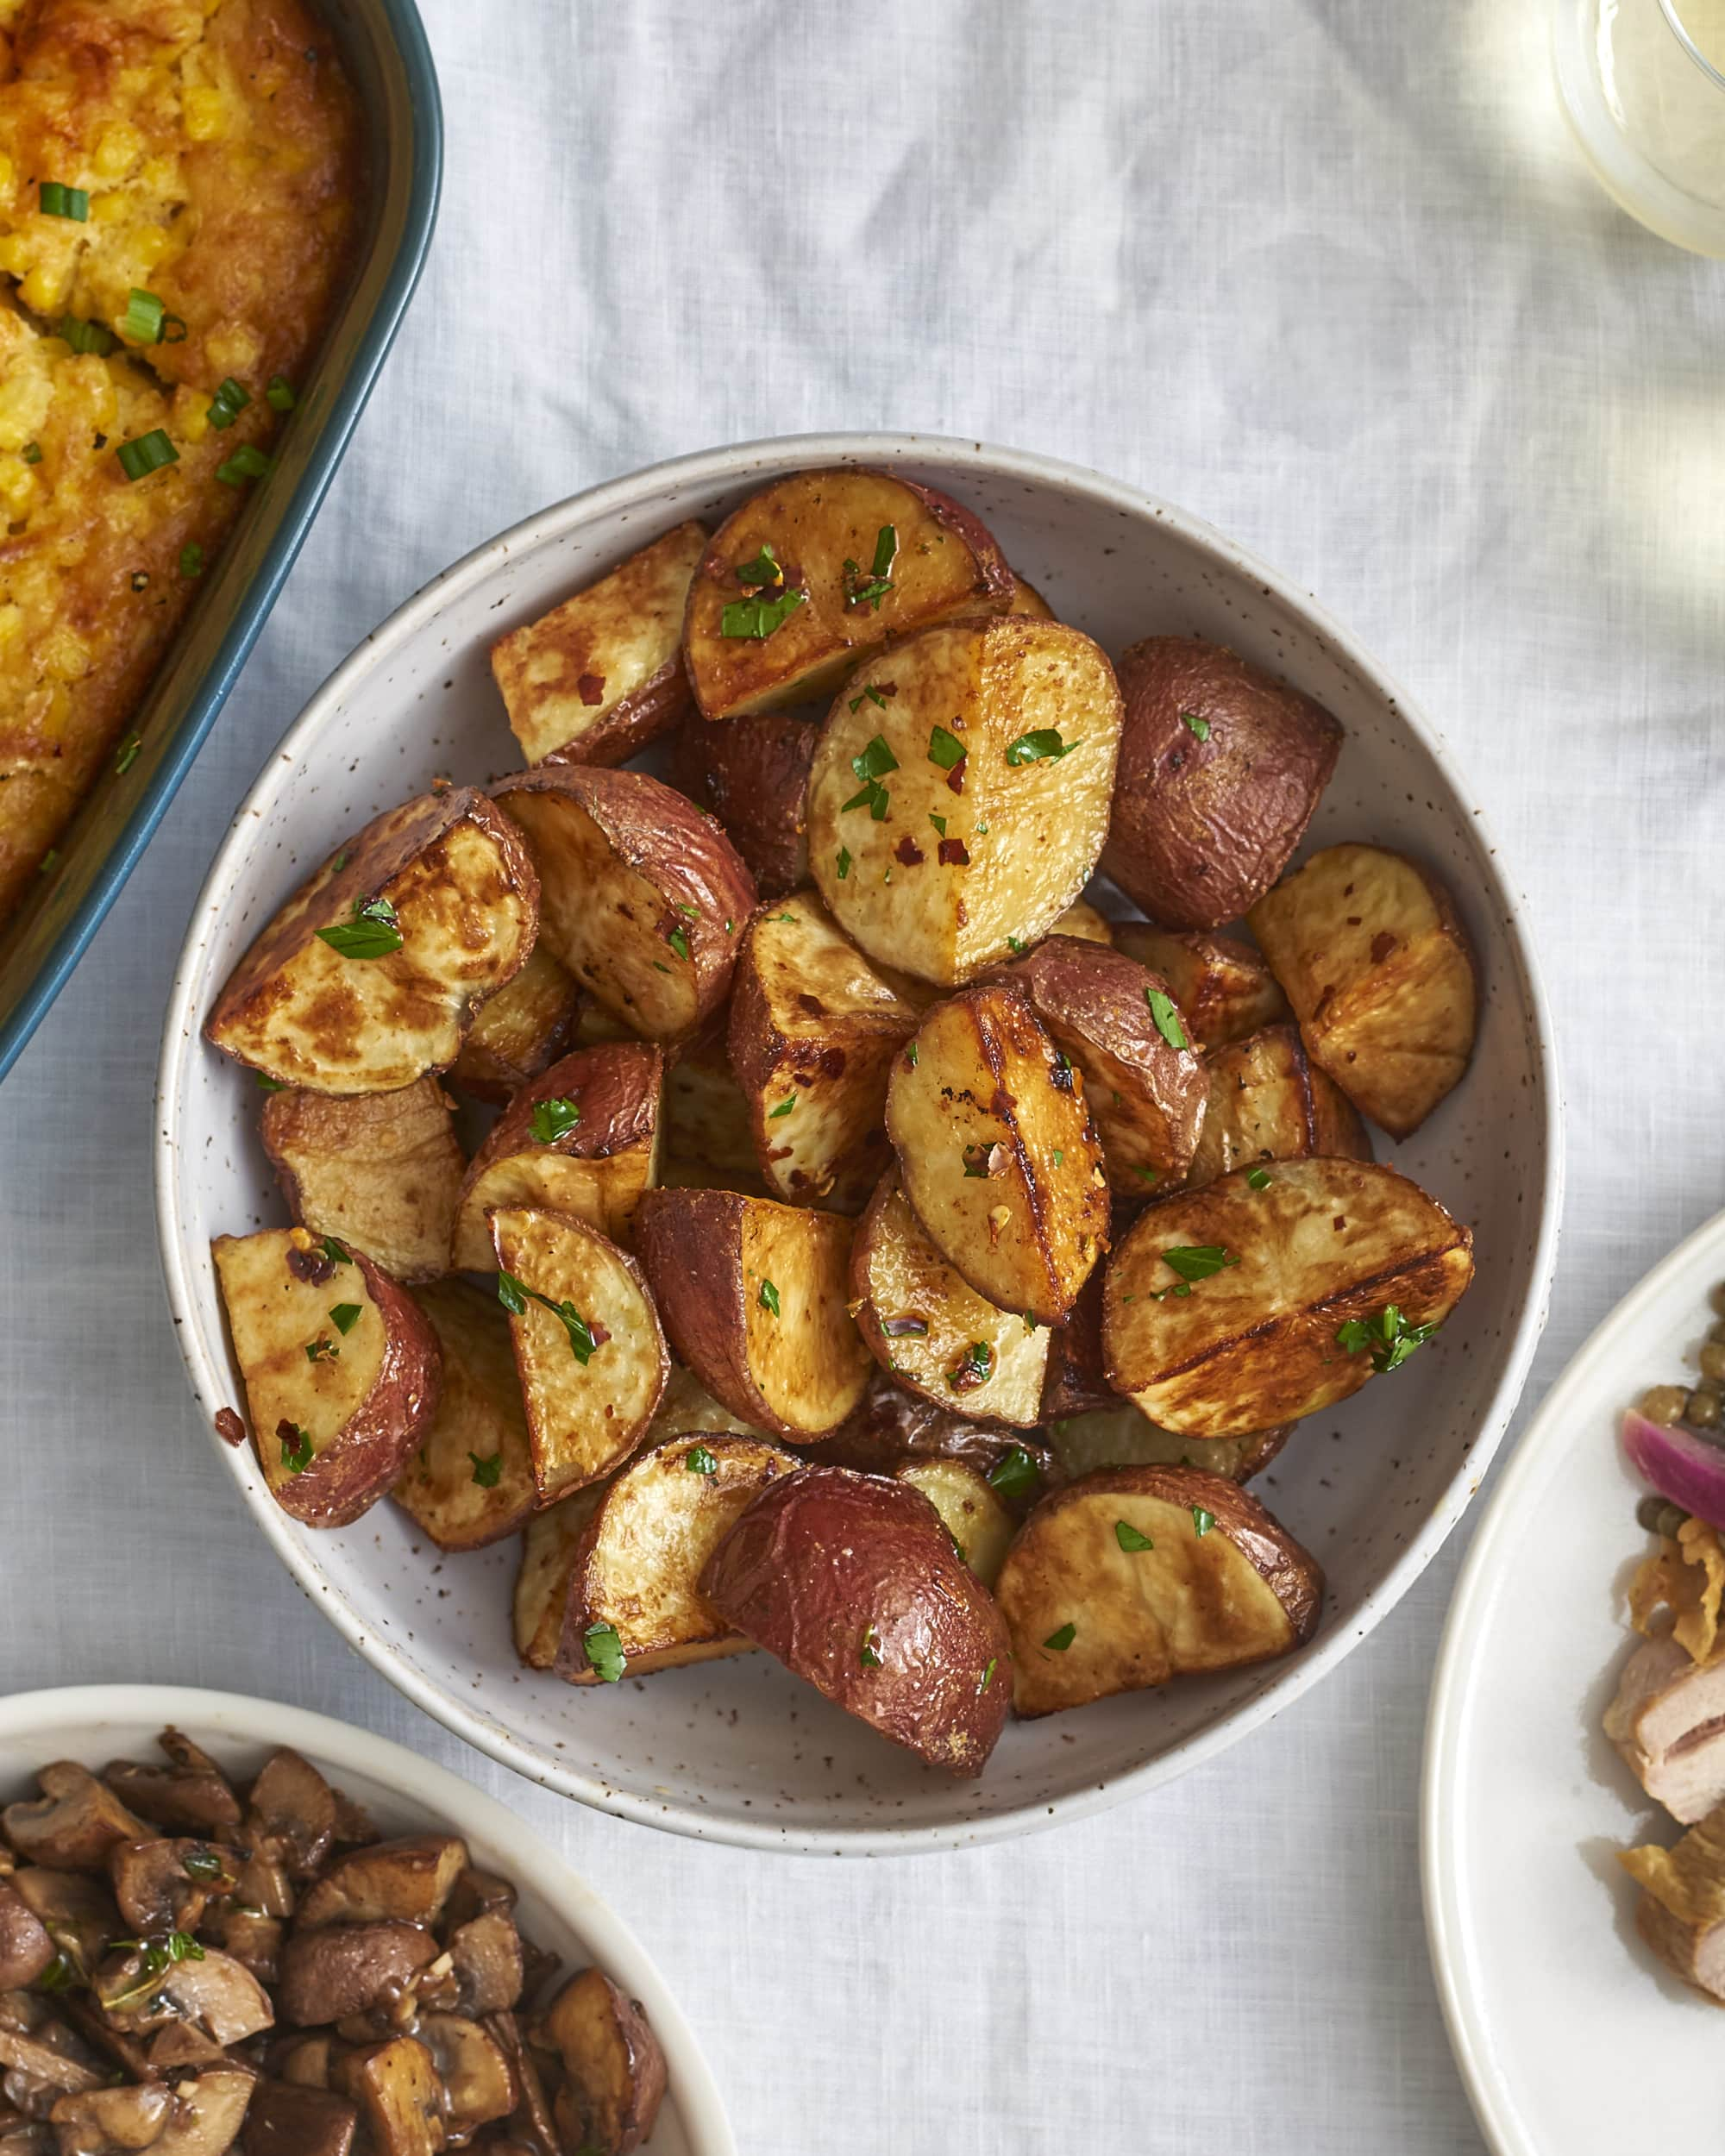 10 Essential Potato Recipes Every Home Cook Should Know